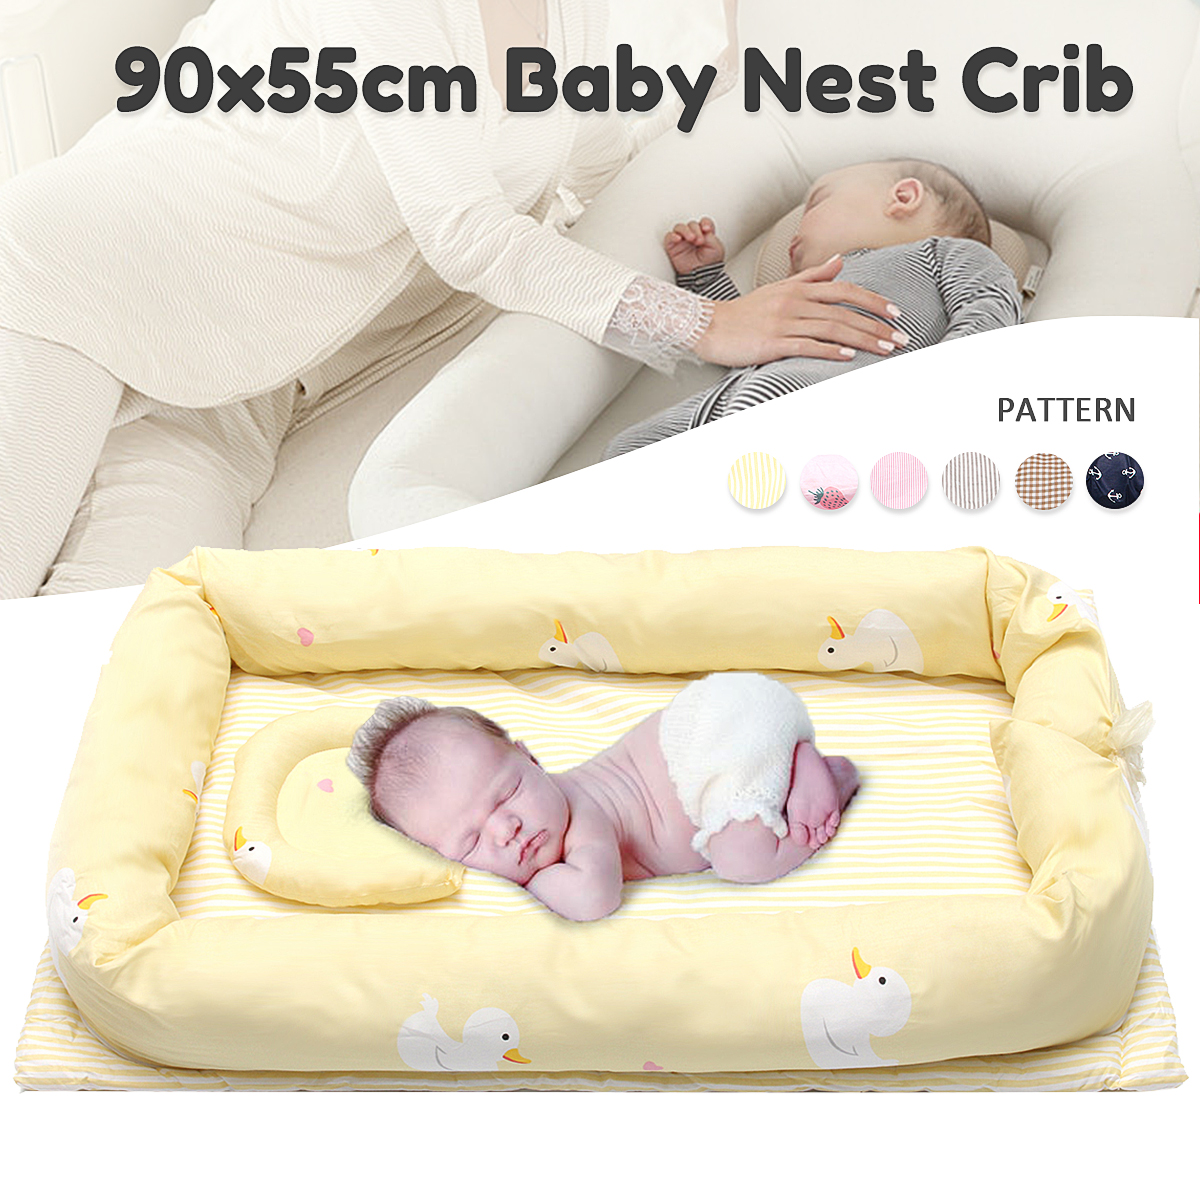 где купить Baby Infant Kids Crib Bed Portable Crib Cot Baby Nest Bed Sleeping Artifact Travel Bed Bedding Sets Bumper Cot Mattress 90x55cm дешево